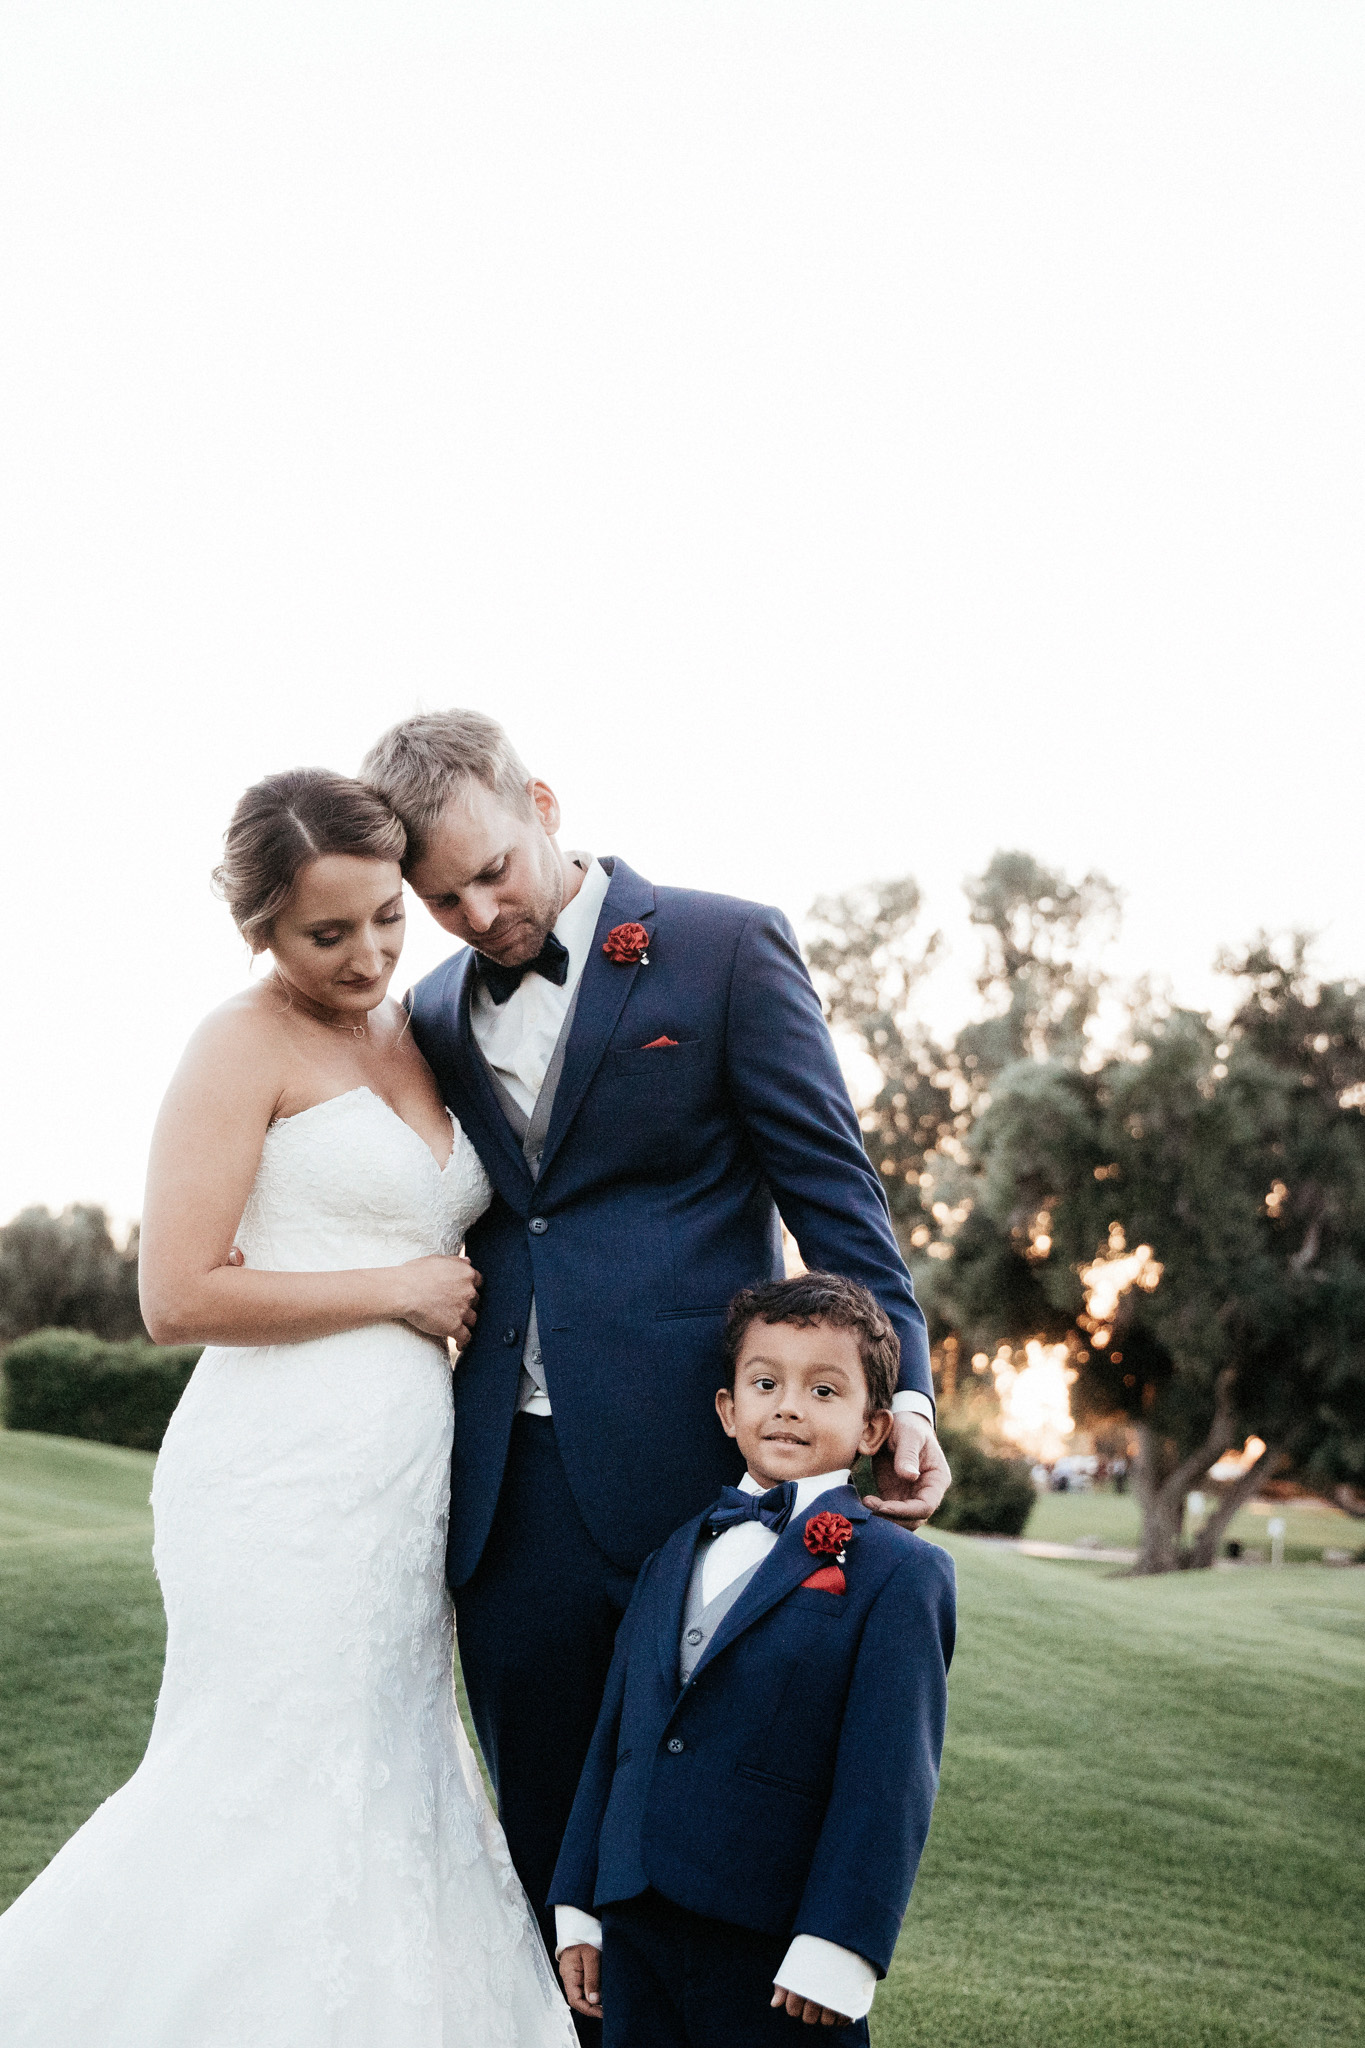 Tucson Wedding Photographer (66 of 117).jpg